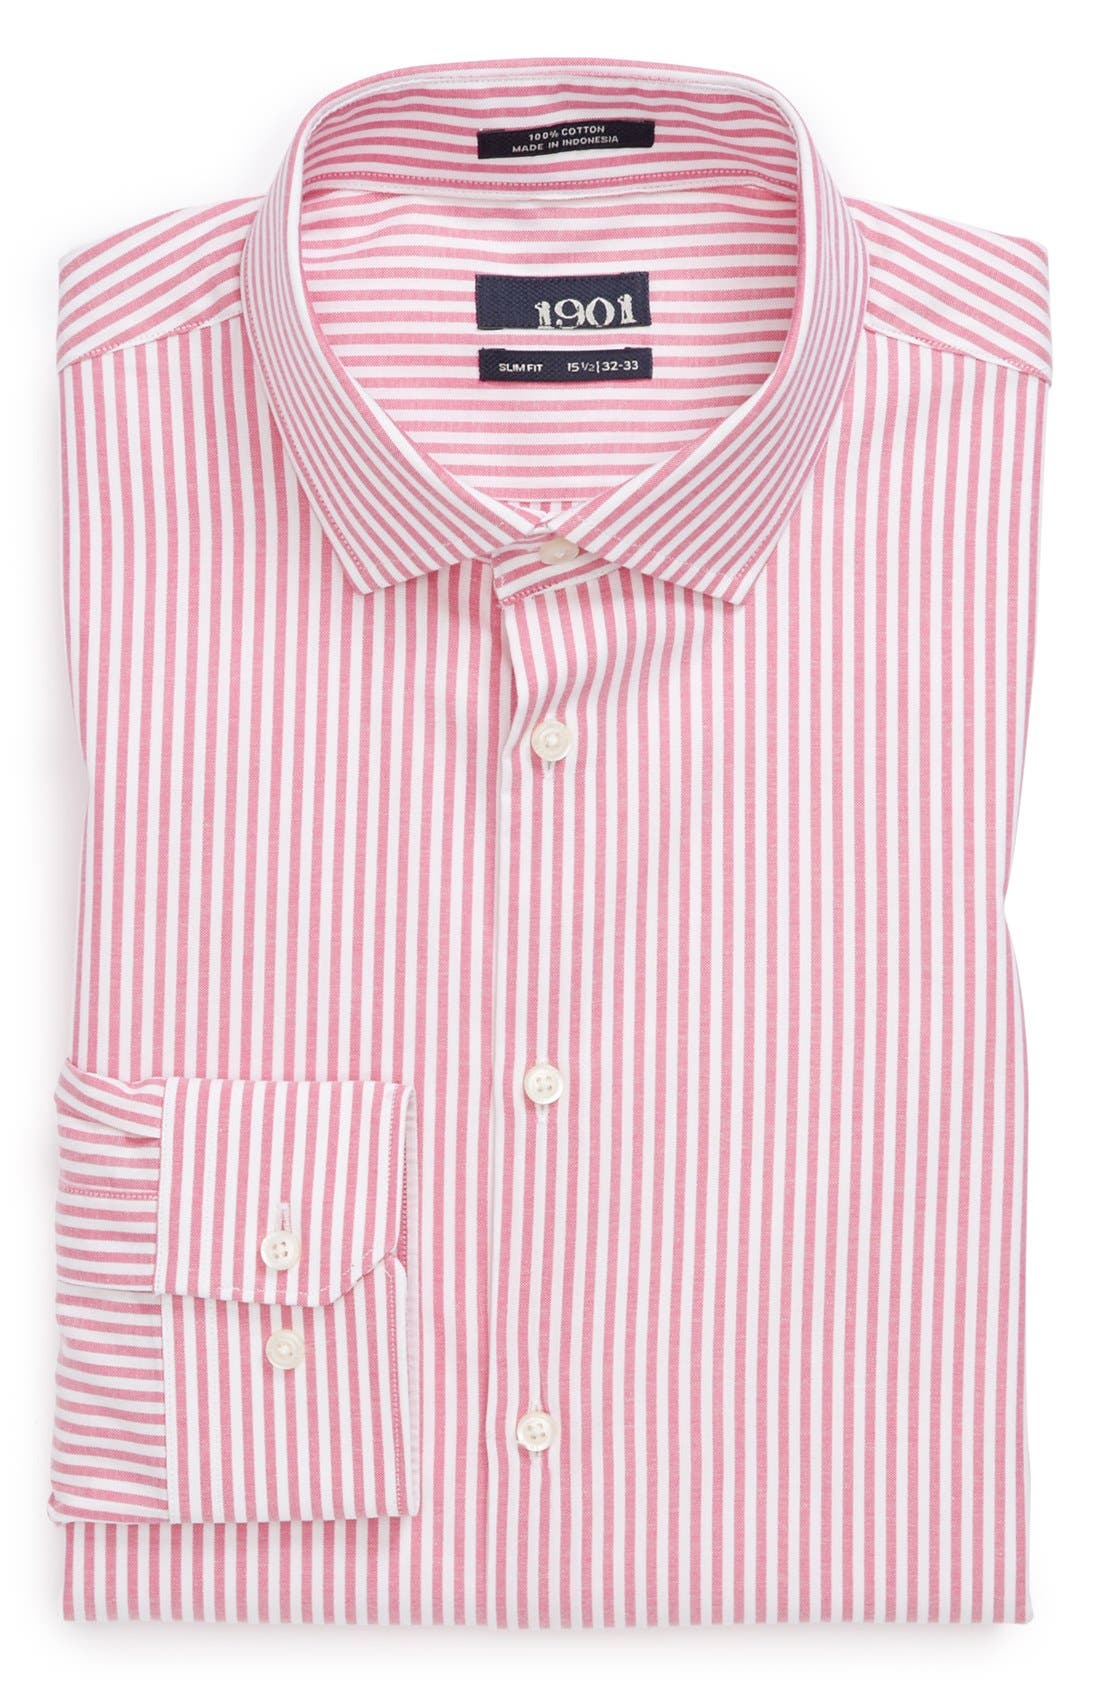 Main Image - 1901 Slim Fit Stripe Oxford Dress Shirt